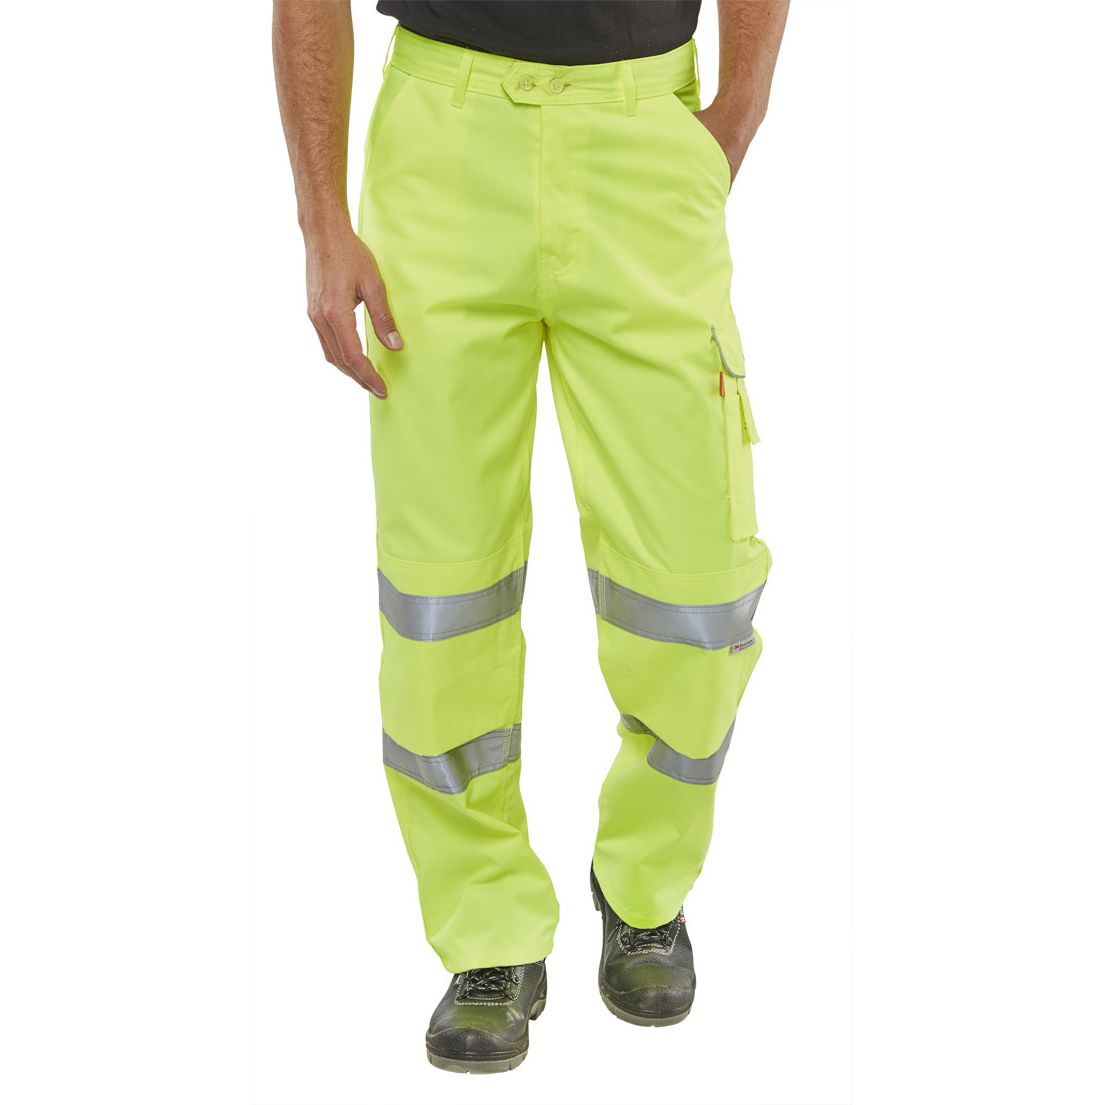 Ladies BSeen Trousers Polycotton Hi-Vis EN471 Saturn Yellow 28 Ref PCTENSY28 *Up to 3 Day Leadtime*